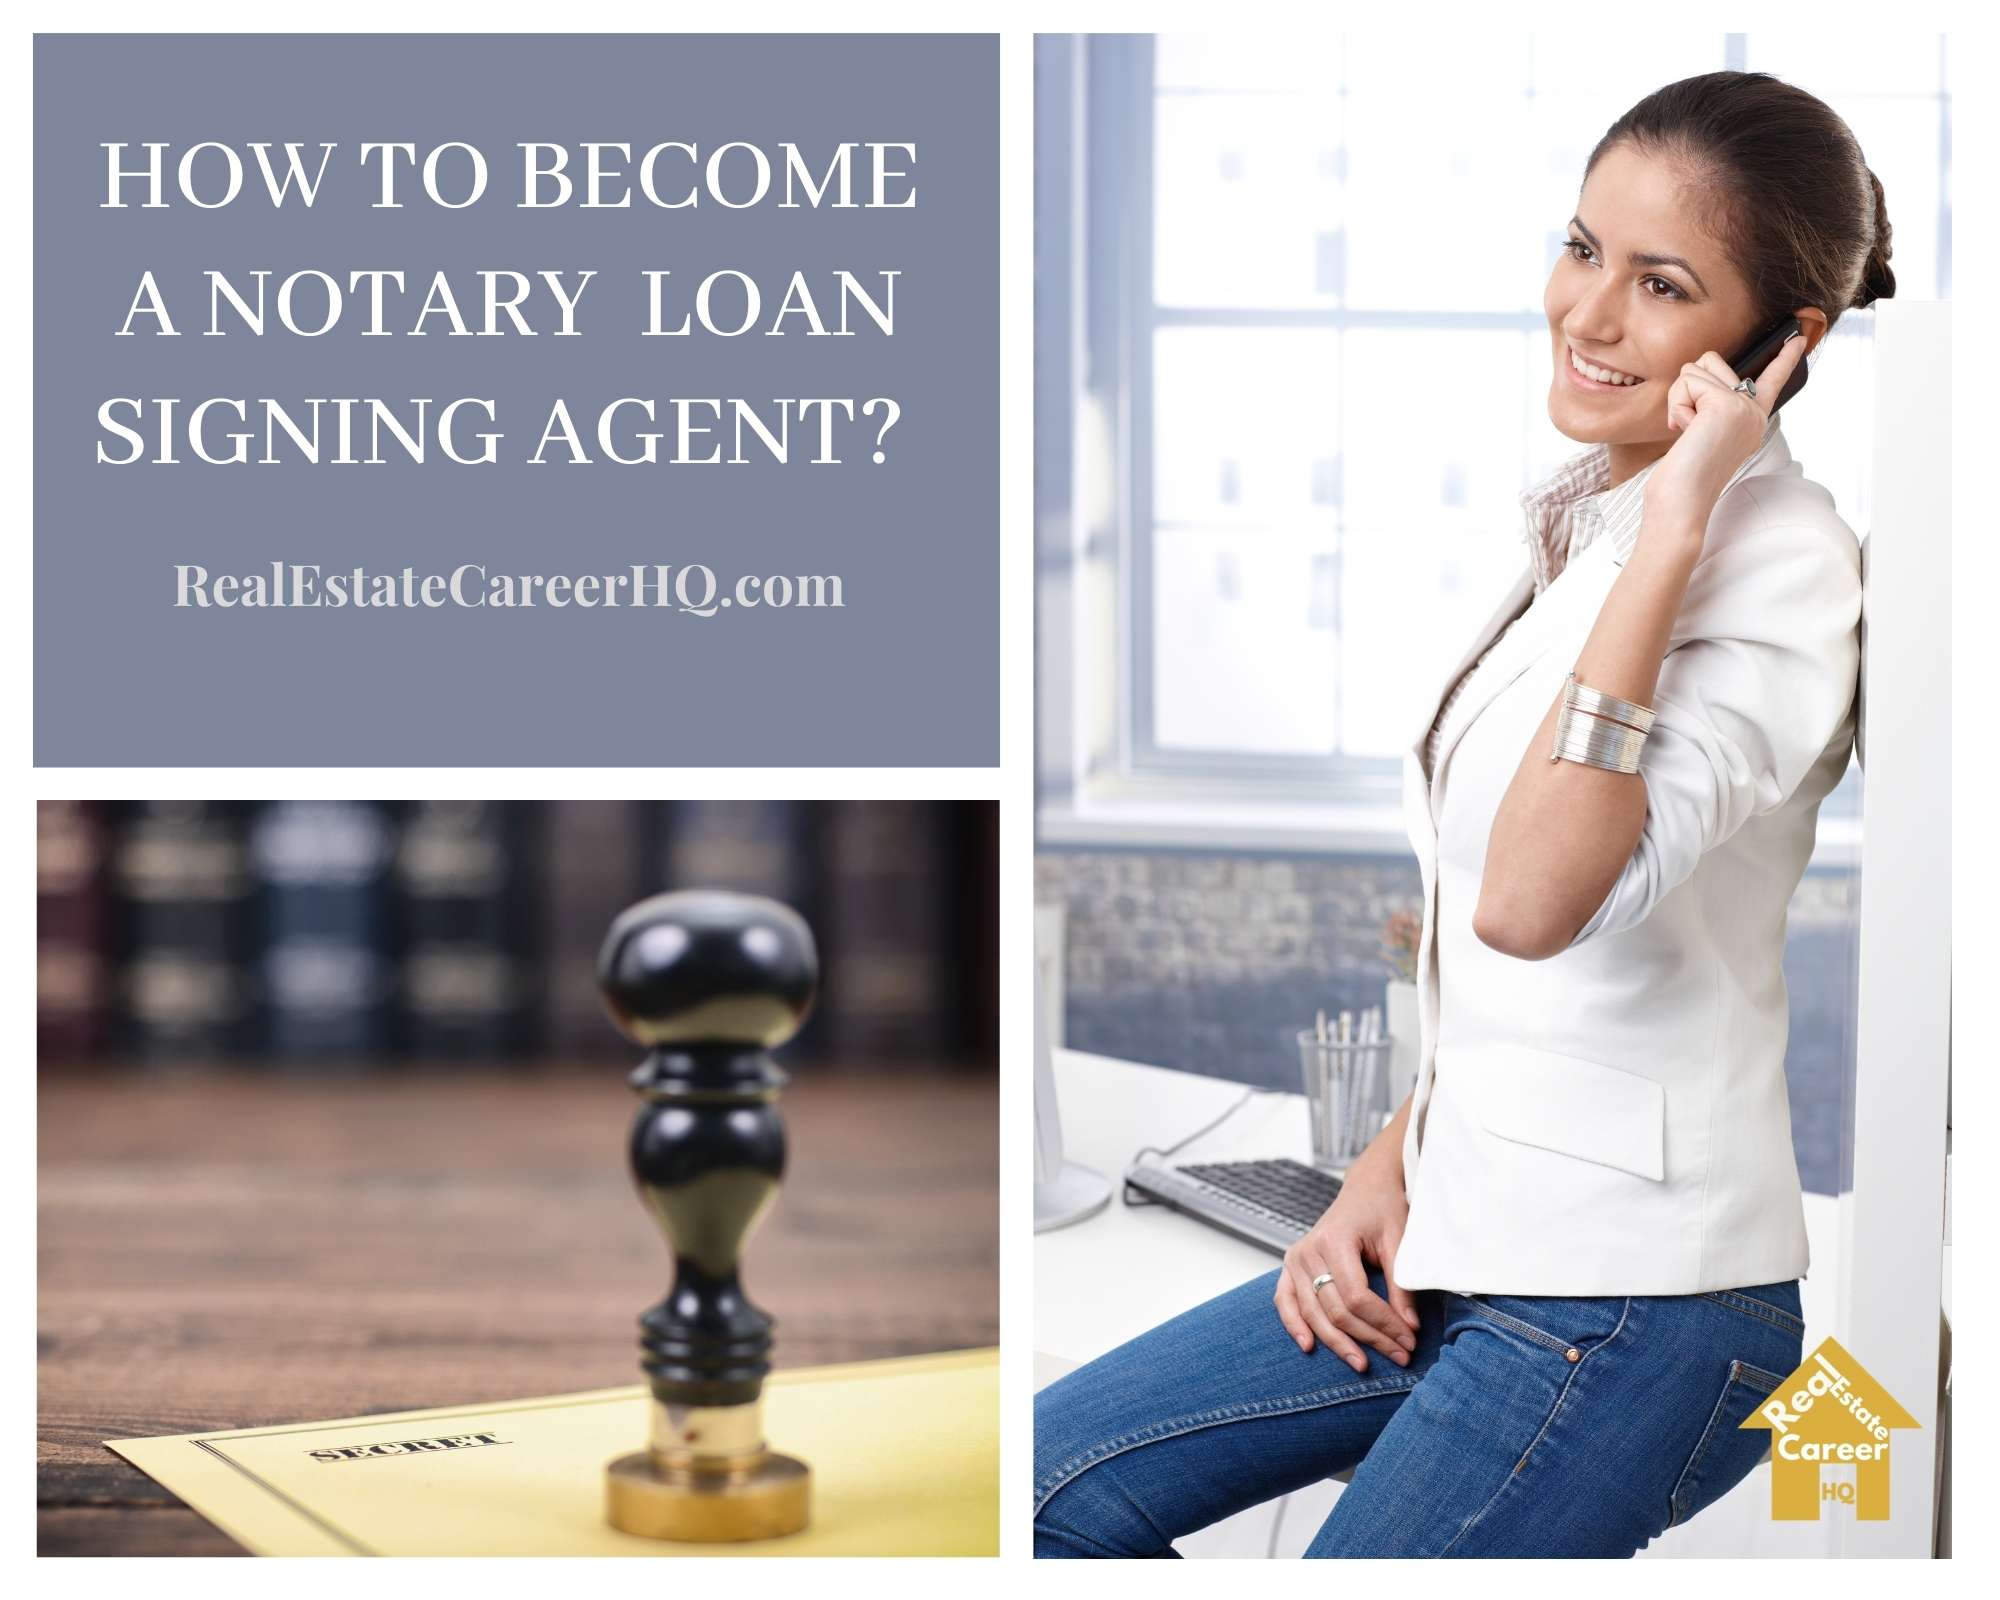 How to become a notary loan signing agent?